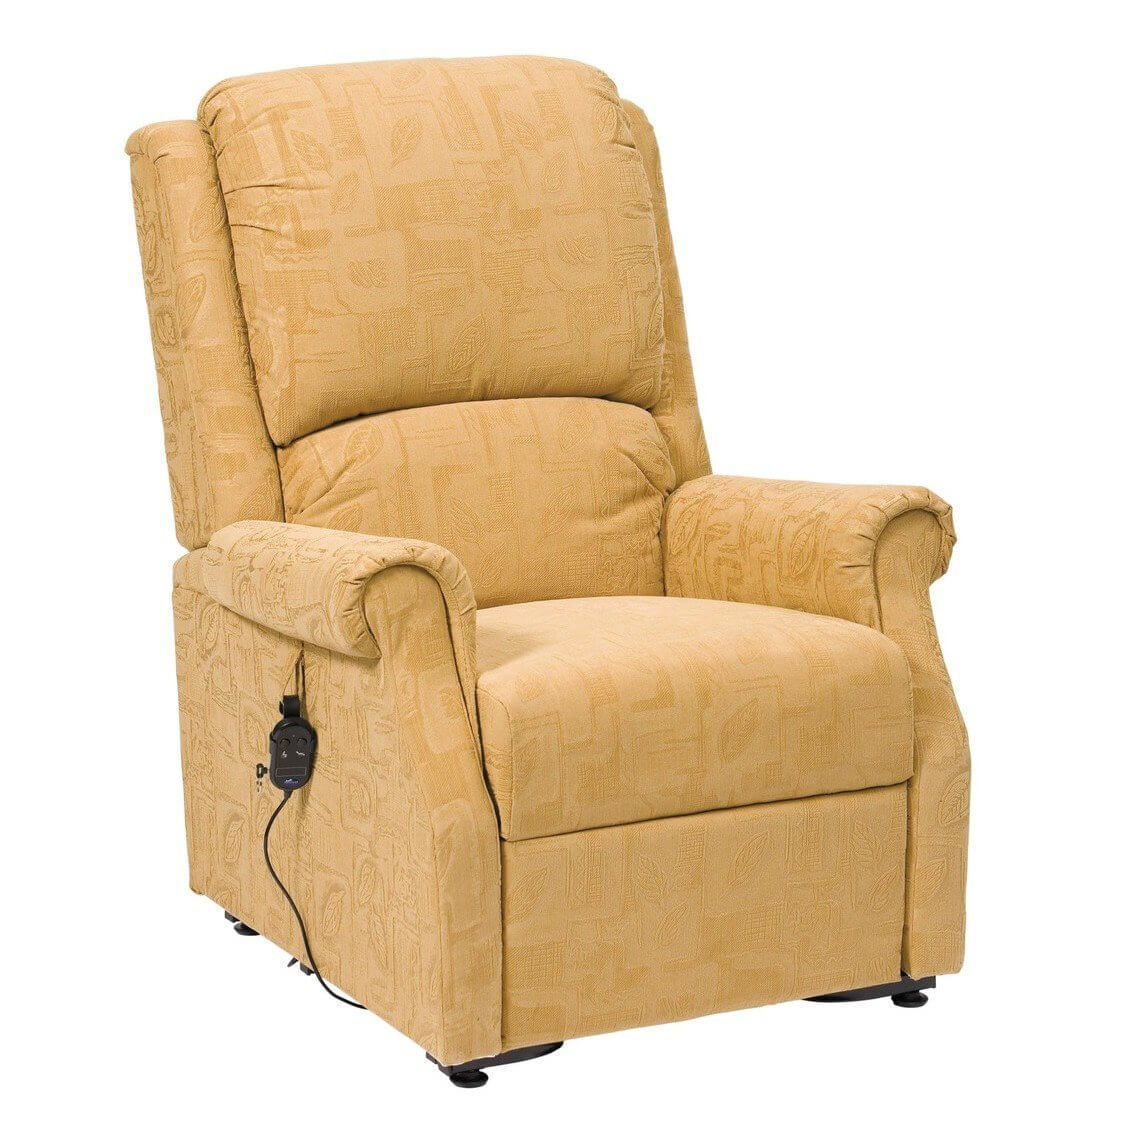 Orthopaedic High Chairs Amp Riser Recliners In Liverpool